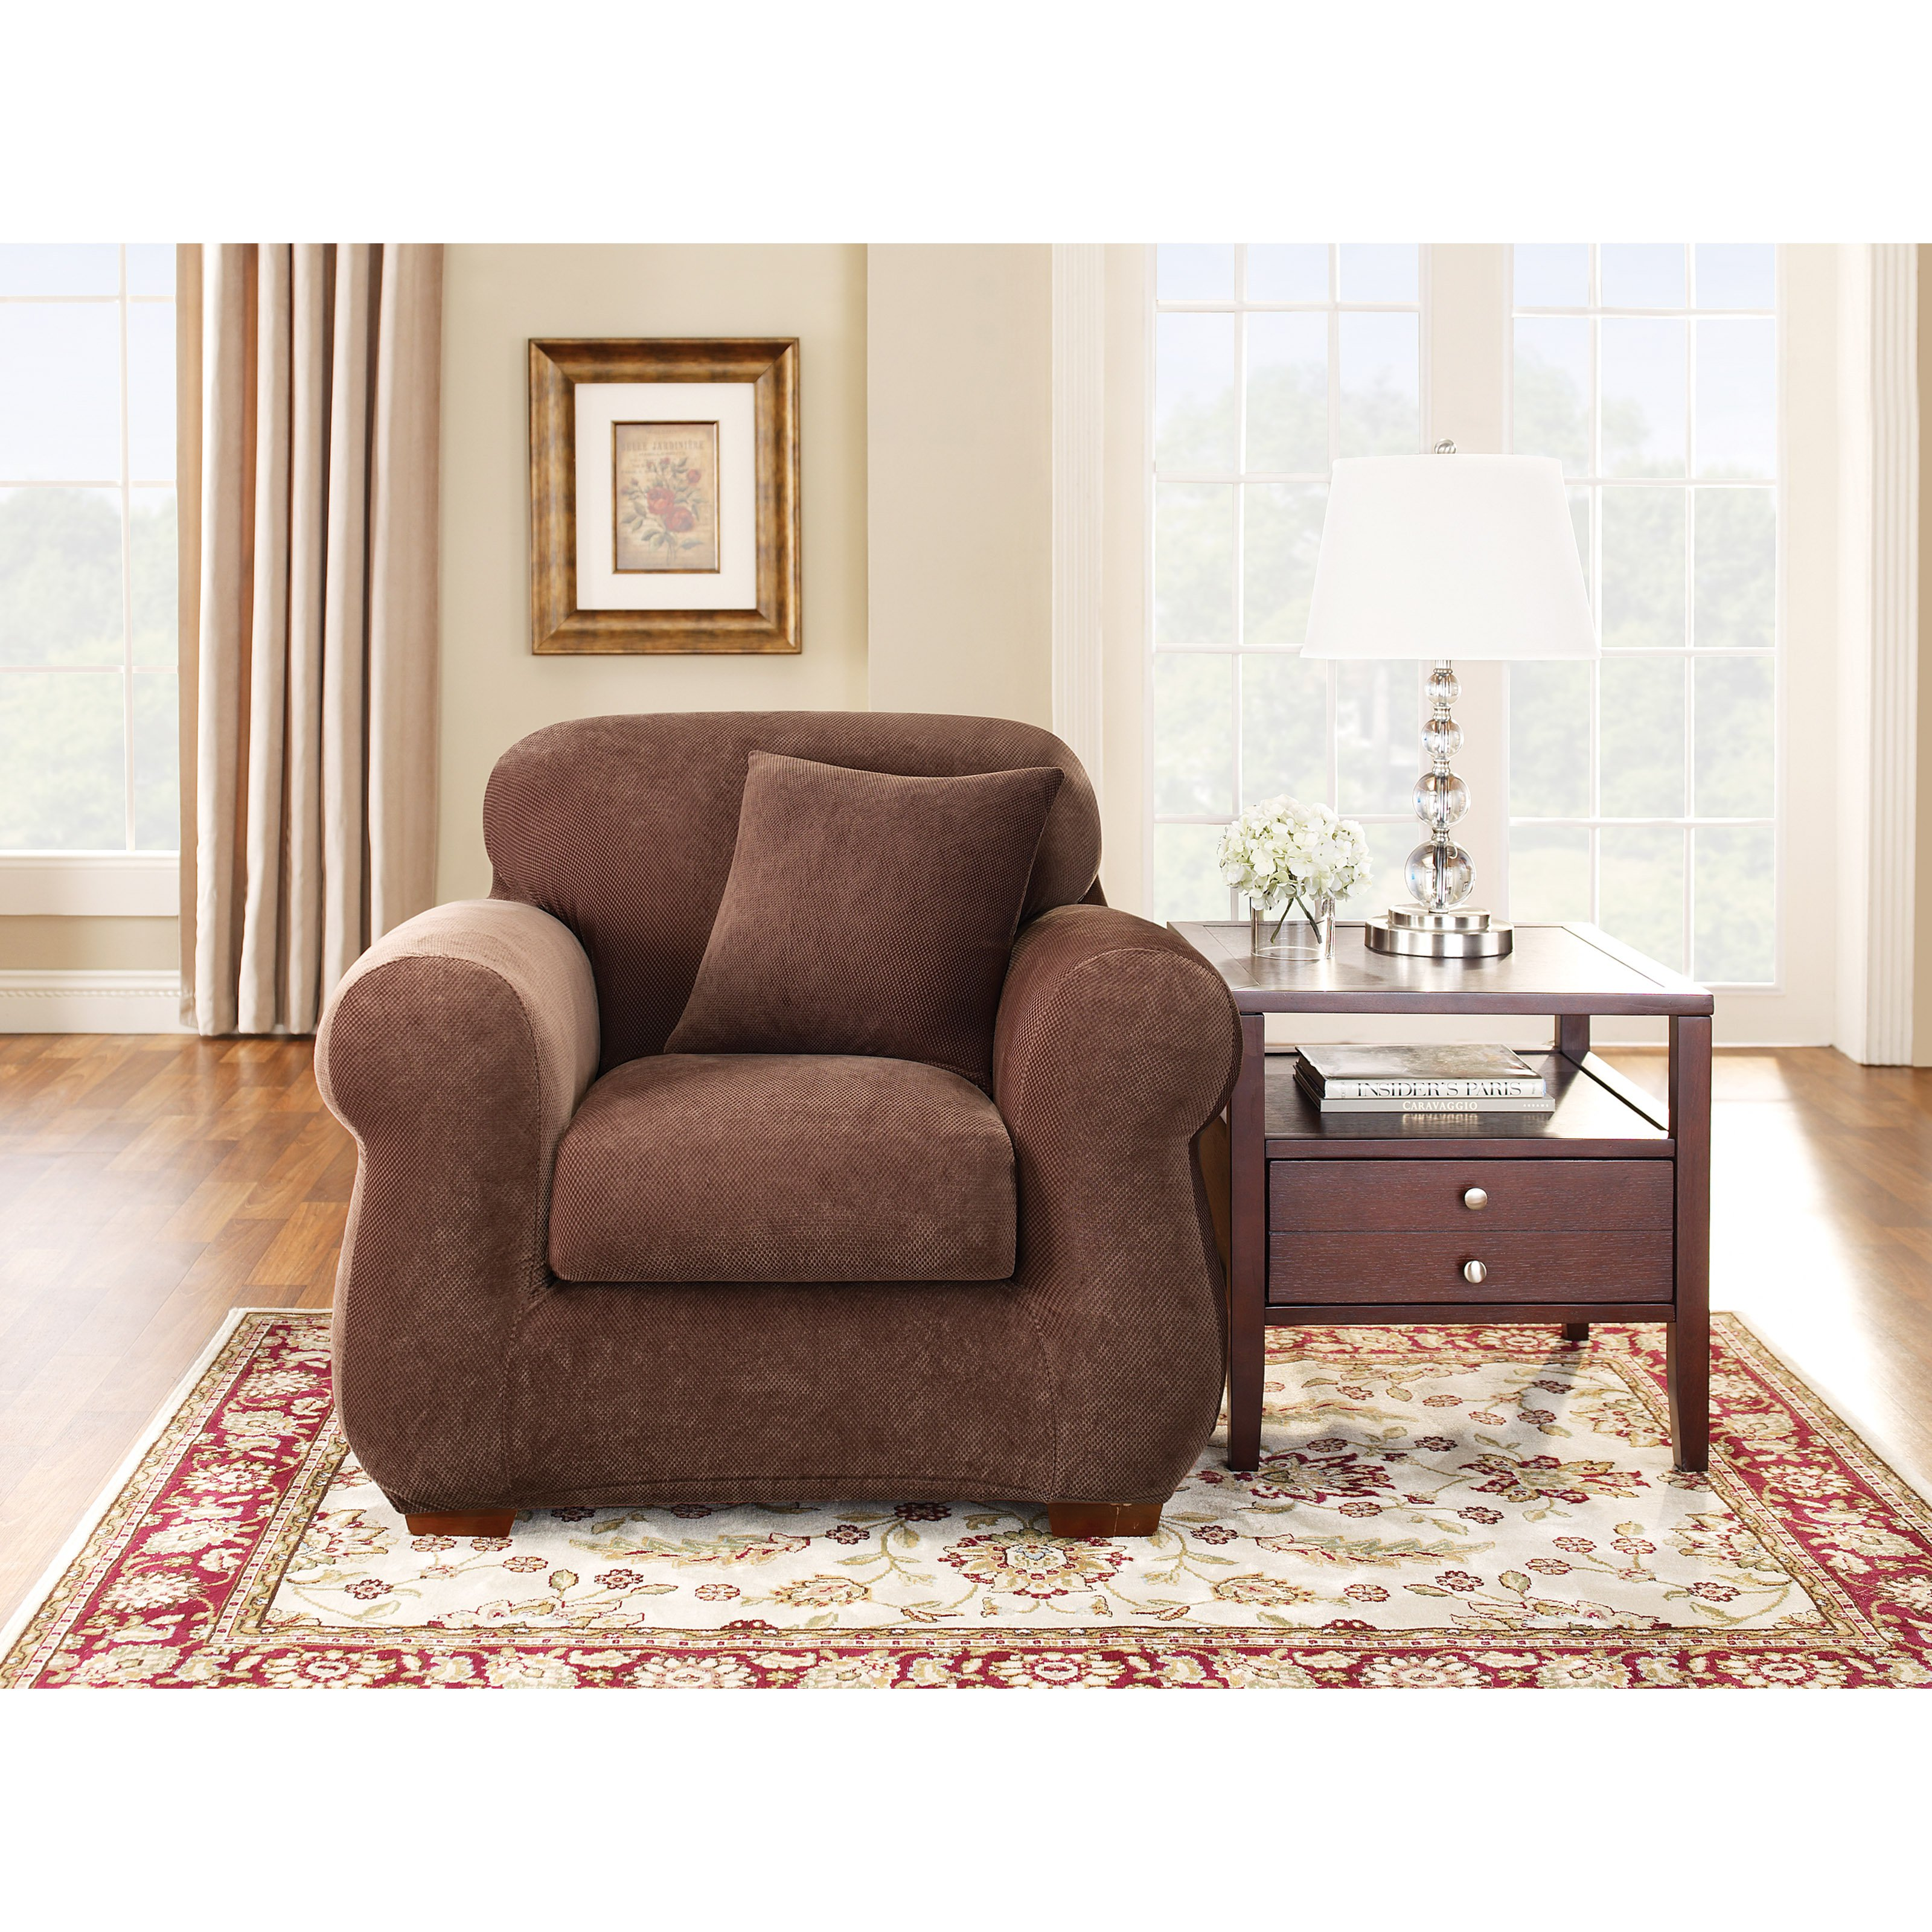 Sure Fit Stretch Pique Two Piece Chair Slipcover - Chocolate